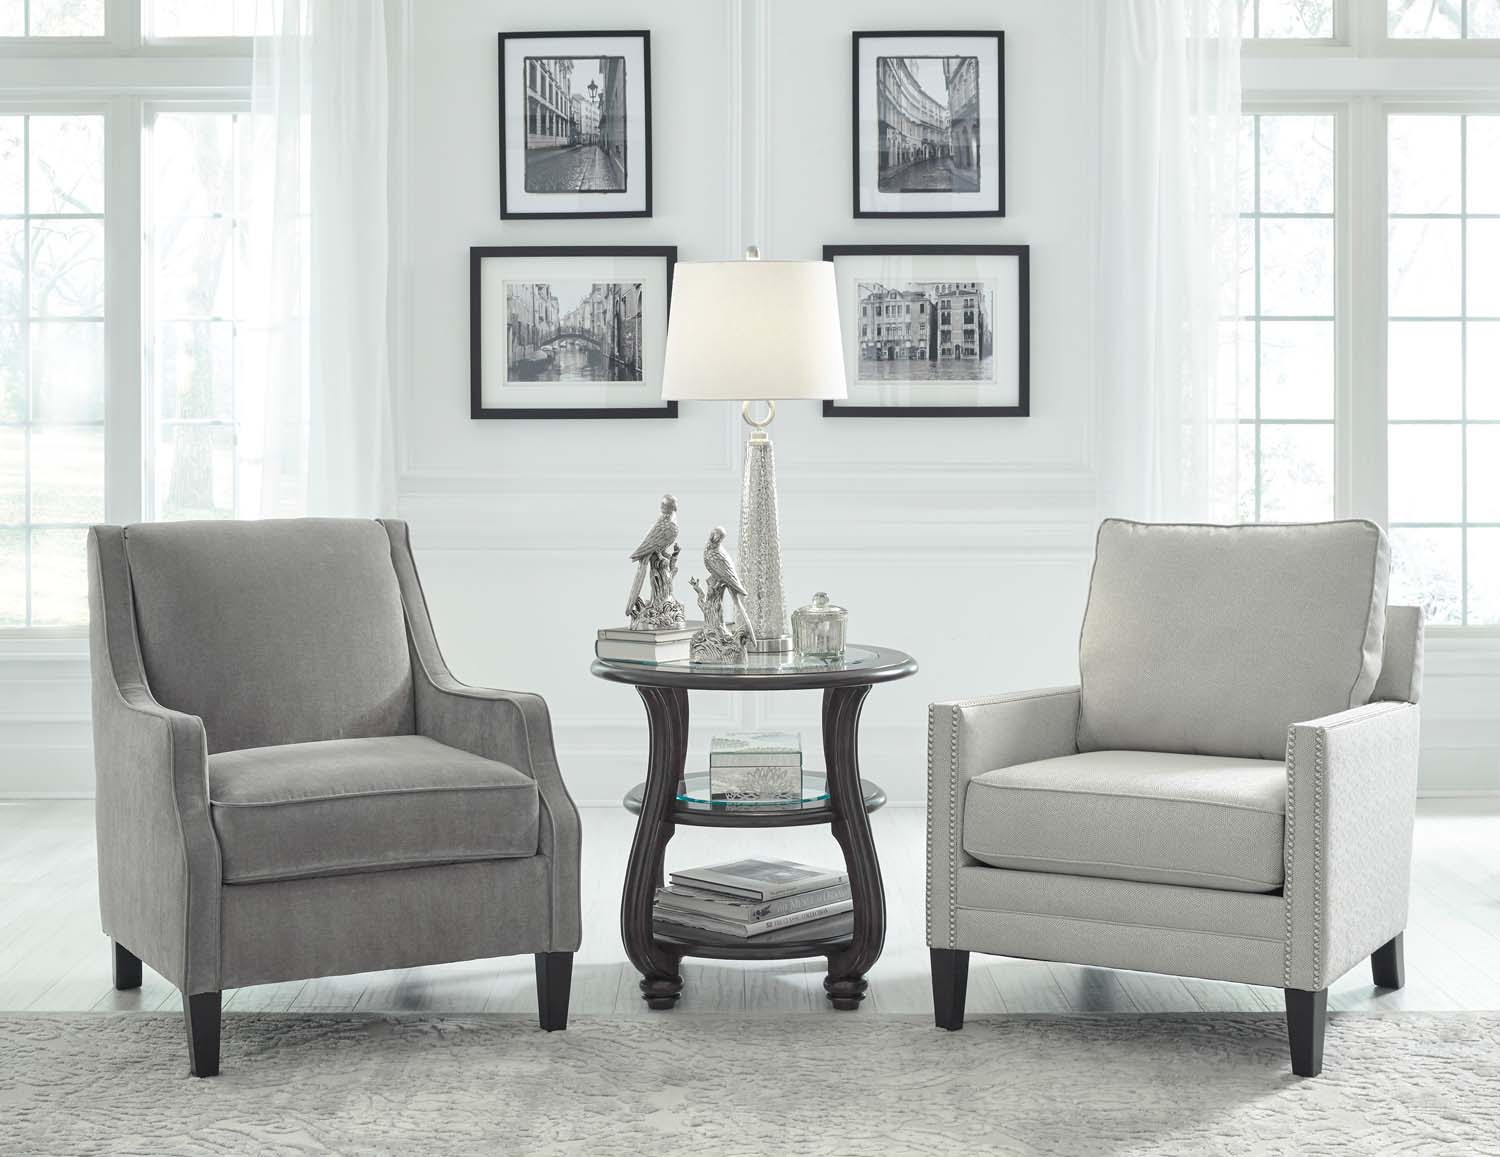 7290121ashley Furniture Accent Chair Westco Home Furnishings